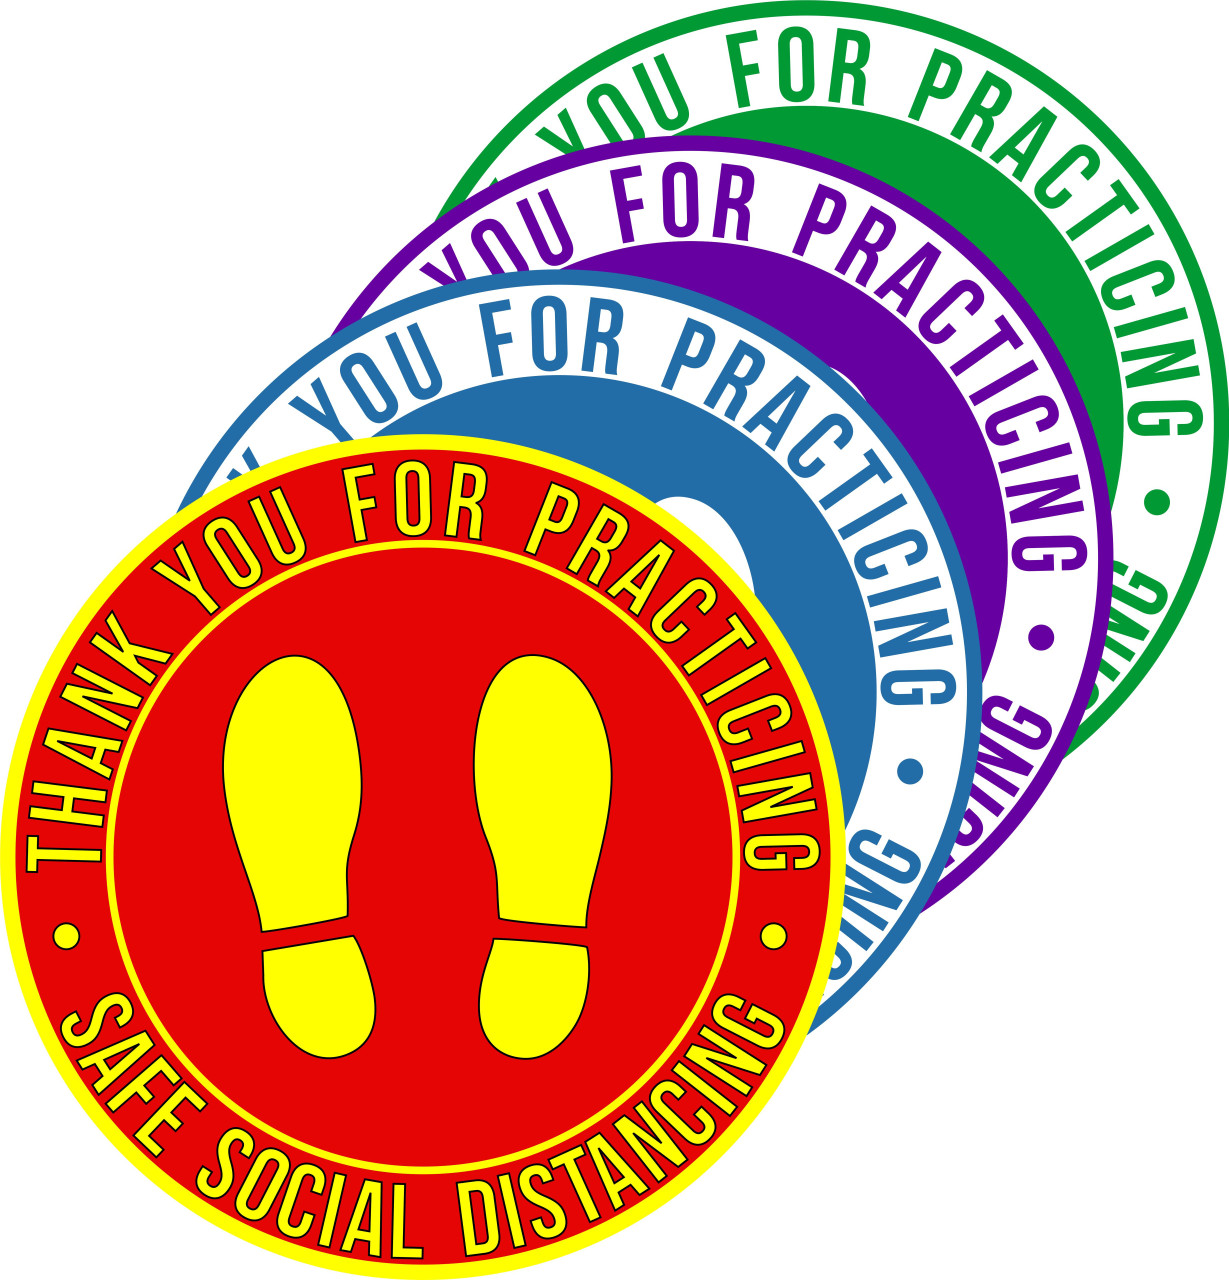 Thank You for Practicing Safe Social Distancing Floor Decal | Covid-19 Floor Sticker | Coronavirus Floor Decal | Social Distancing Floor Sign | Pandemic Floor Sticker | Social Distance Safety Distance Marker